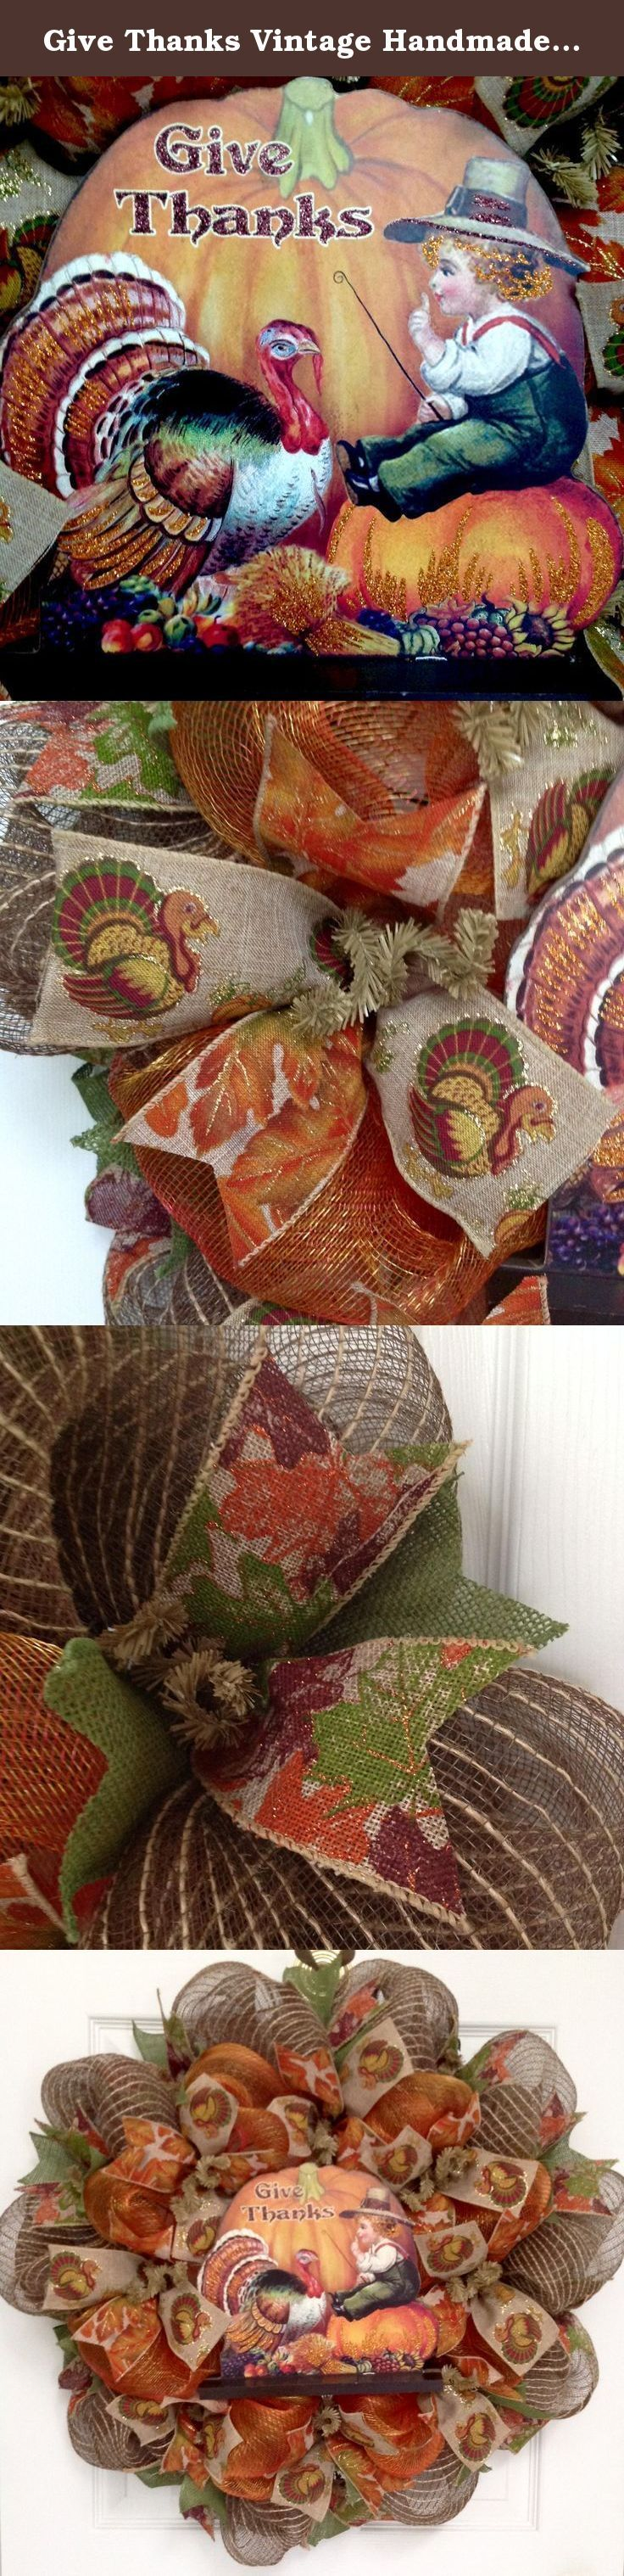 Give Thanks Vintage Handmade Thanksgiving Deco Mesh Wreath. New! Full! Premium! Handmade Harvest Or Thanksgiving Wreath. The outer ring is a creamy brown burlap mesh with natural jute threads. Gorgeous leaf printed premium burlap ribbons along with moss green burlap ribbons surround the exterior. The center ring is made with bright orange and gold two tone deco mesh. Beautiful canvas ribbons with printed turkeys and colorful Autumn leaves ribbons surround the center. An adorable, wood…